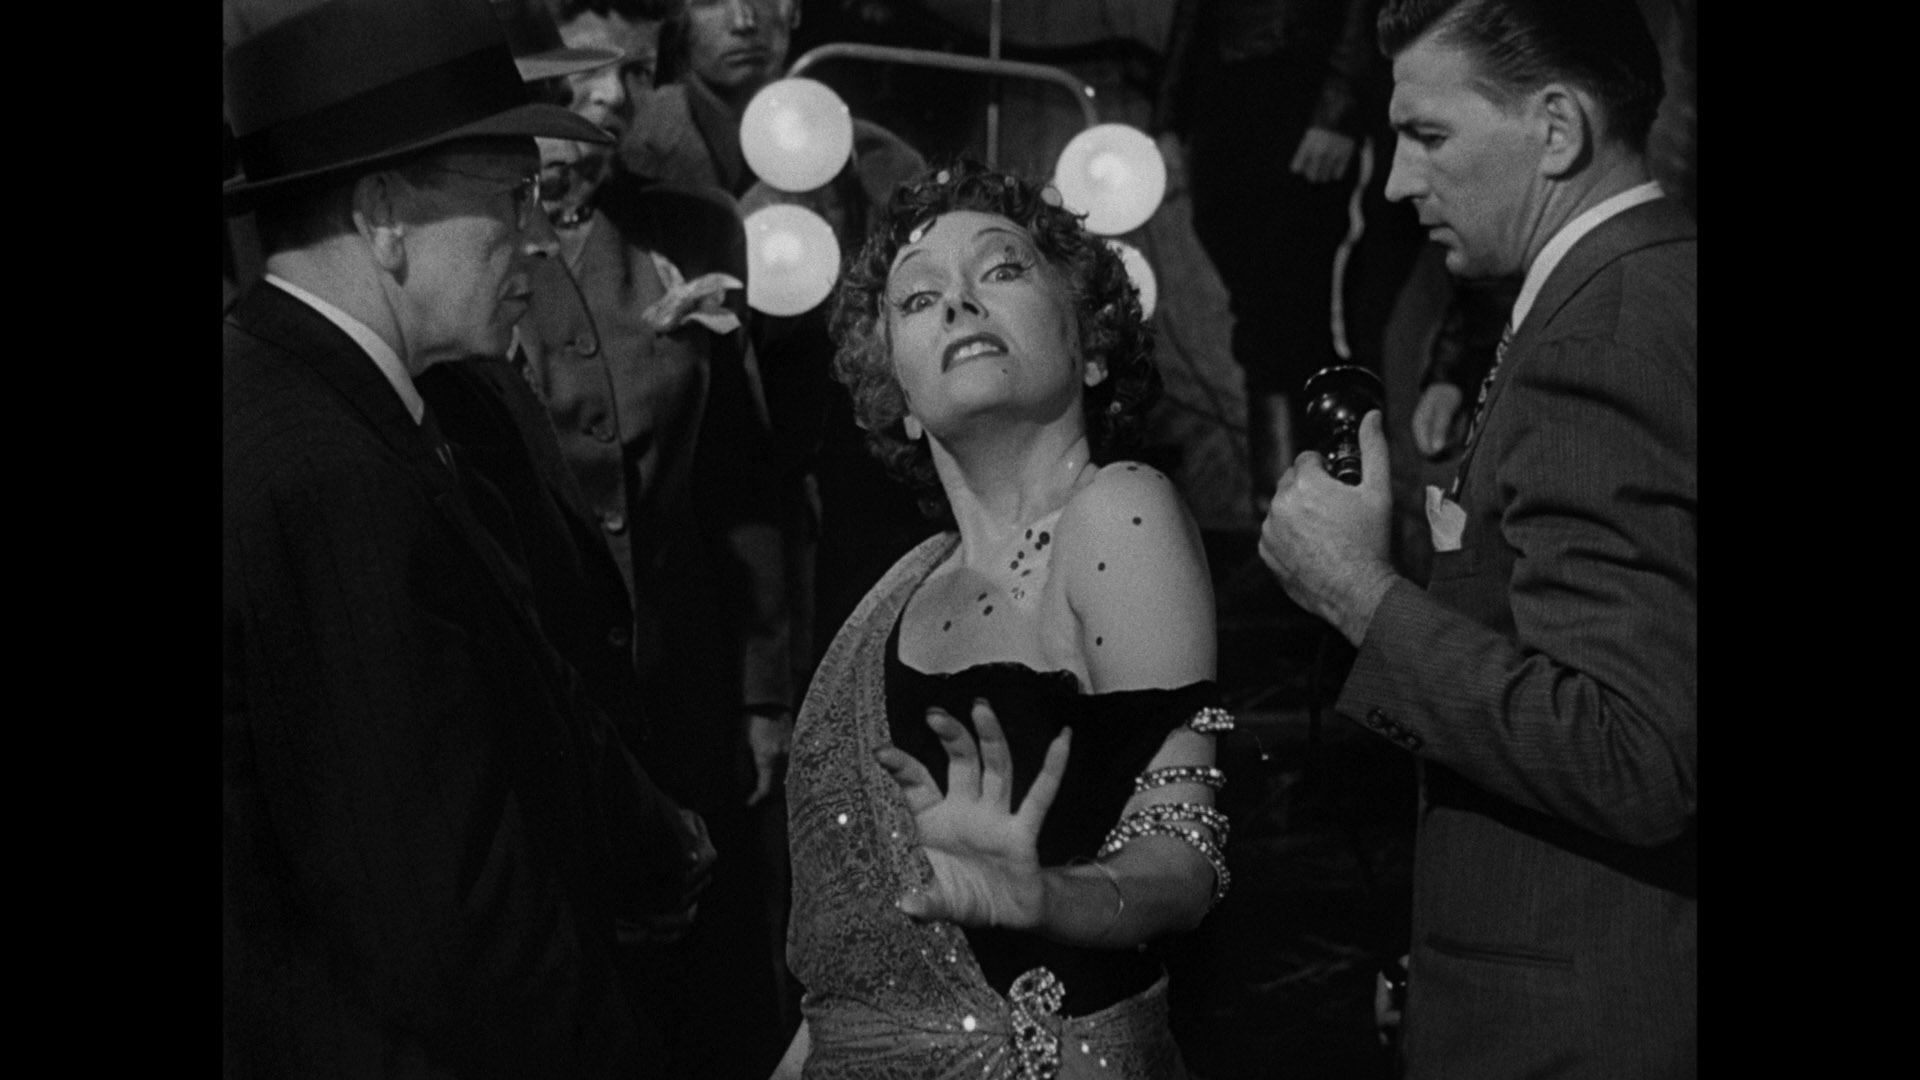 movie analysis of sunset boulevard film studies essay Sunset boulevard analyses essay bros july 13, 2016 write a classical narrative analysis on: sunset boulevard for billy wilder, 1950 ( the film that must be analyzed) note: essays that do not meet the academic research requirement.